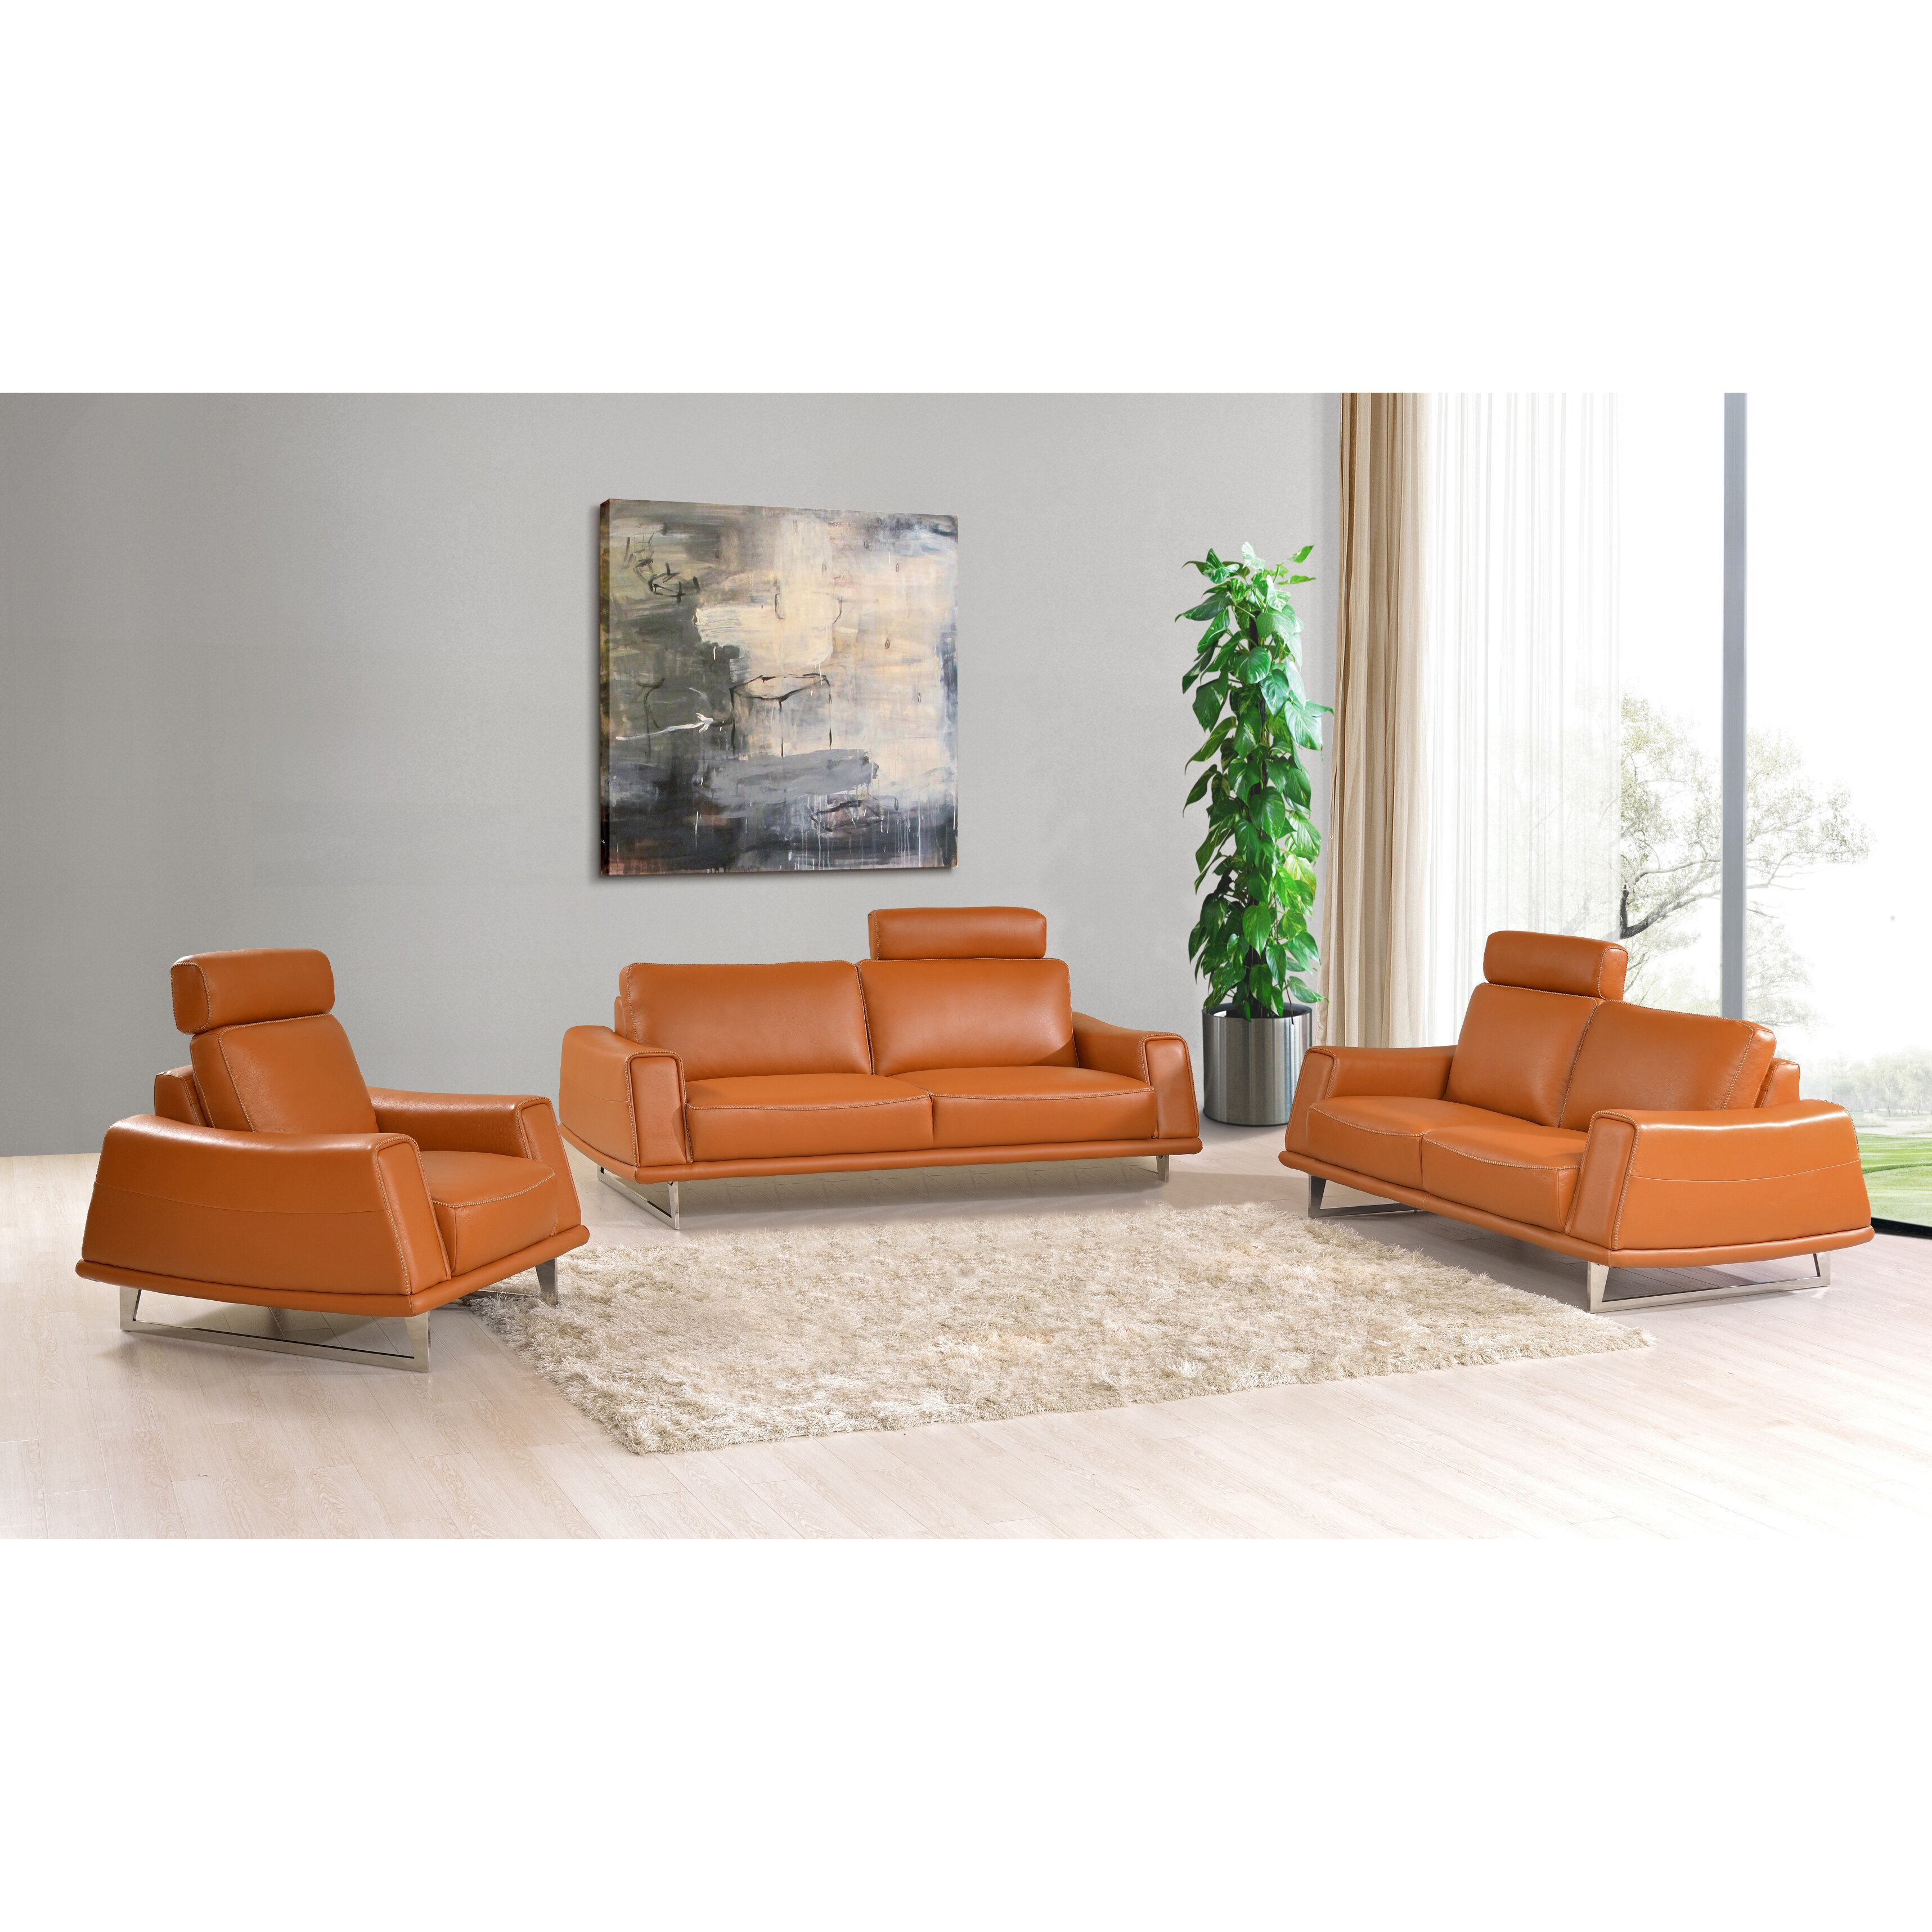 Nocidesign leather 3 piece living room set for 3 piece living room set